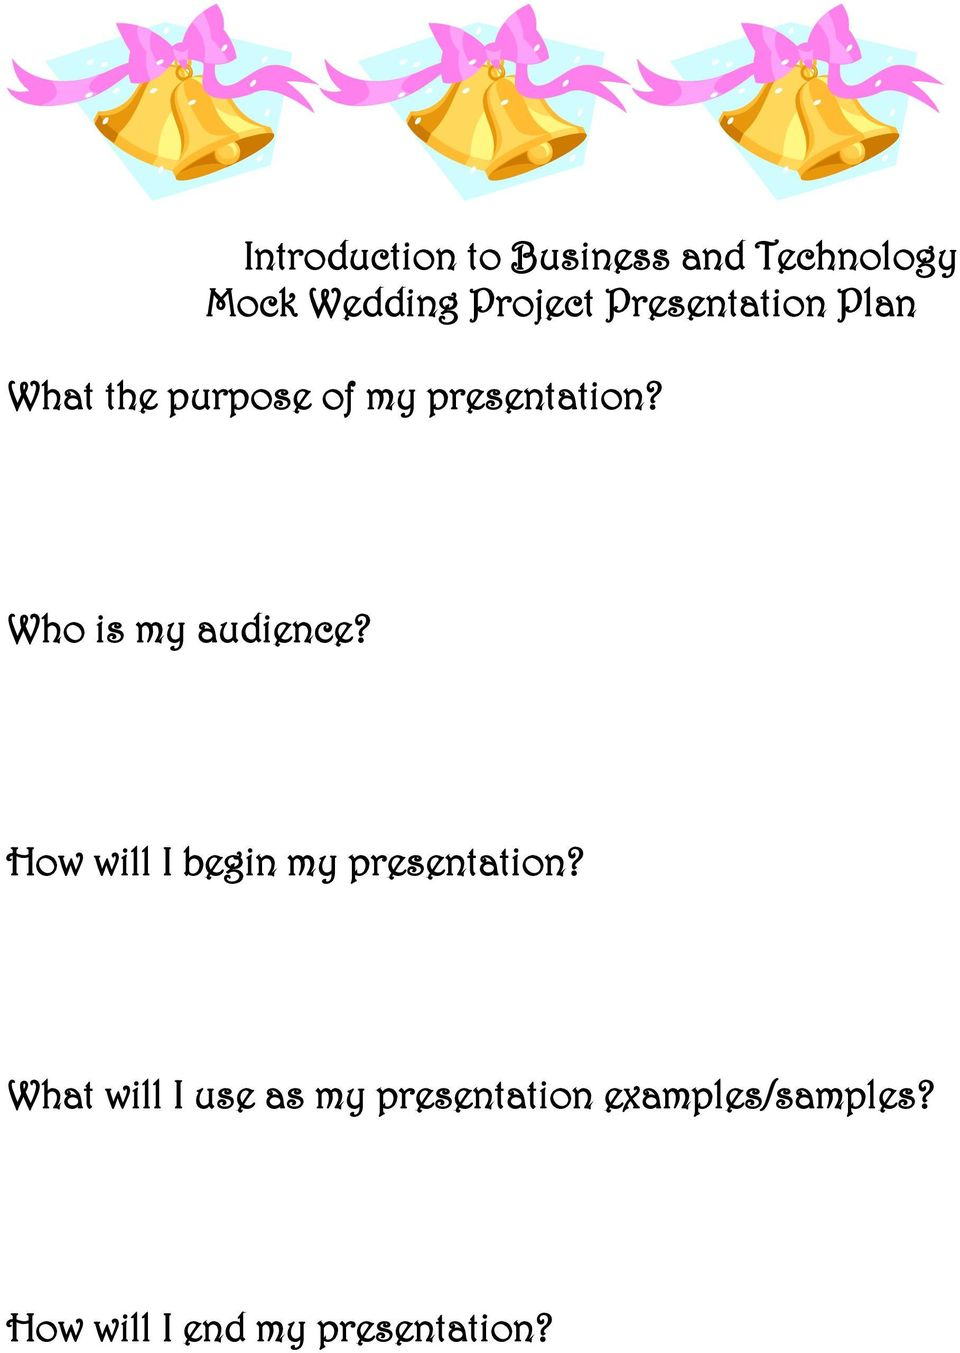 Who is my audience? How will I begin my presentation?